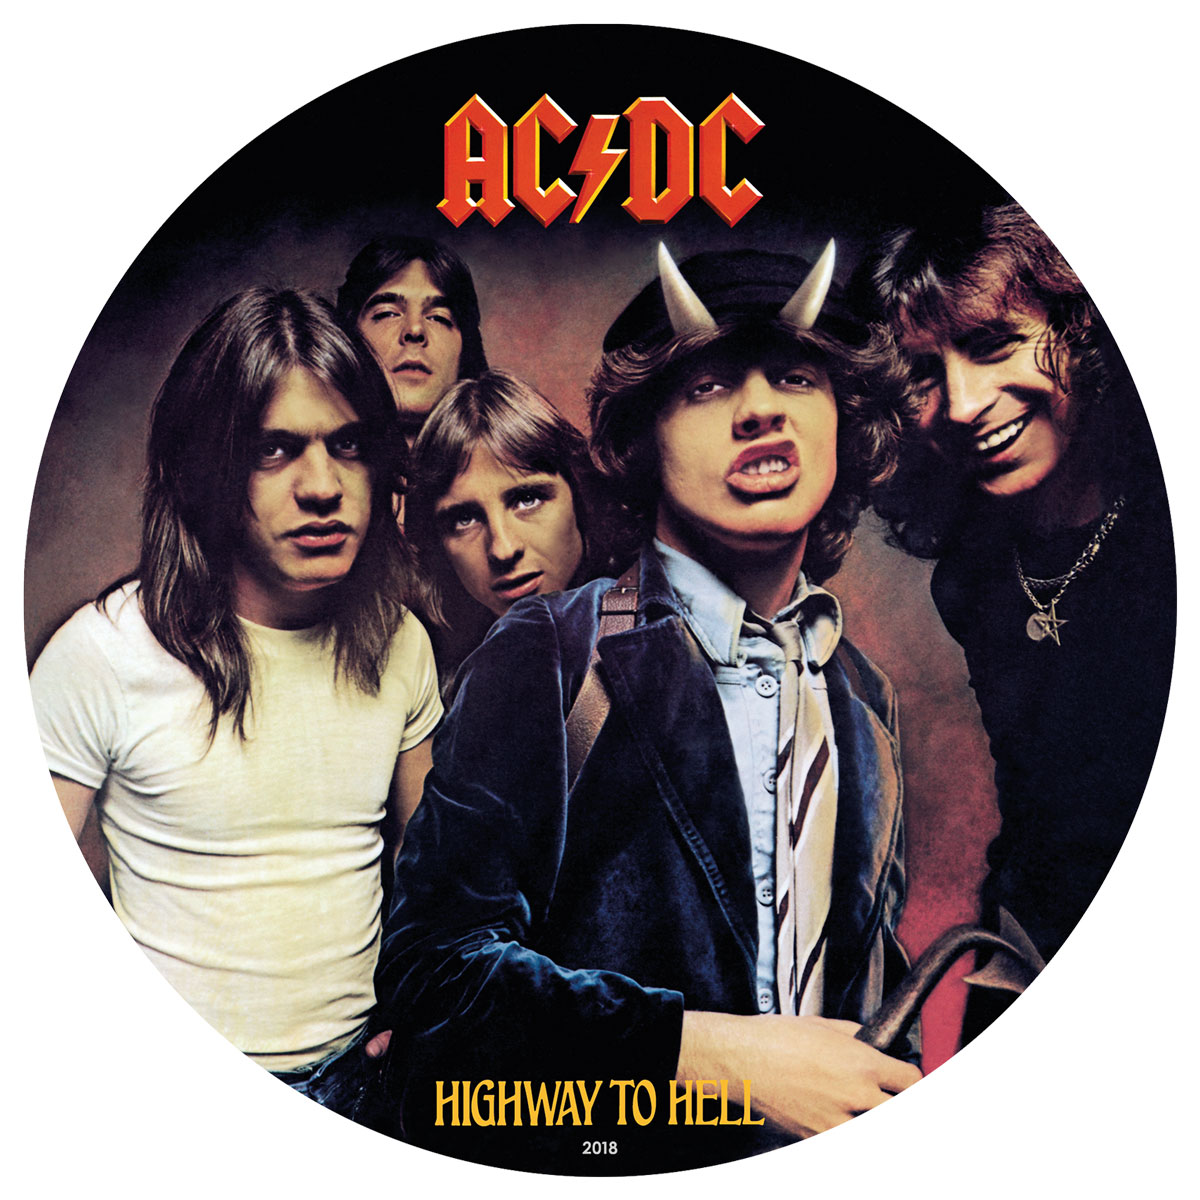 2019 Cook Islands AC/DC Record Shaped Foil - Highway to Hell 1/2 oz Silver Colorized Prooflike $2 Coin GEM Prooflike in Display Case